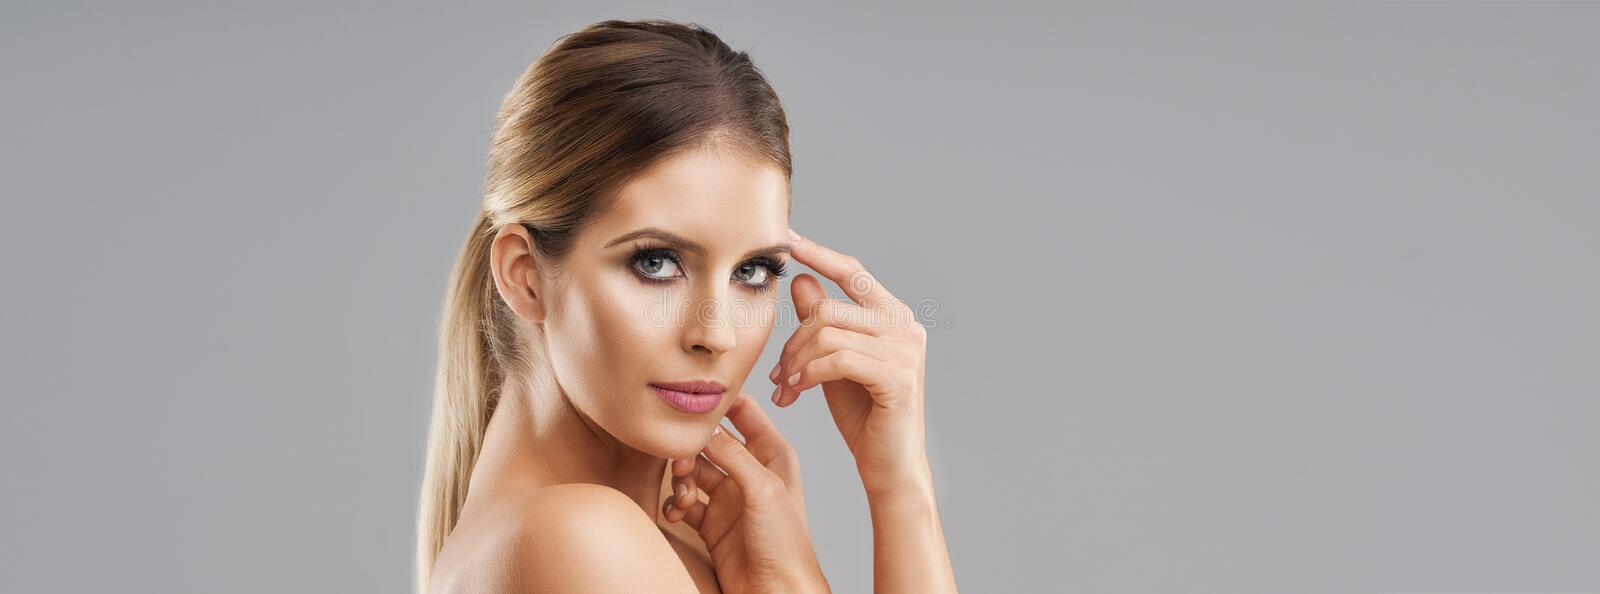 Beautiful adult woman posing over gray background stock photos